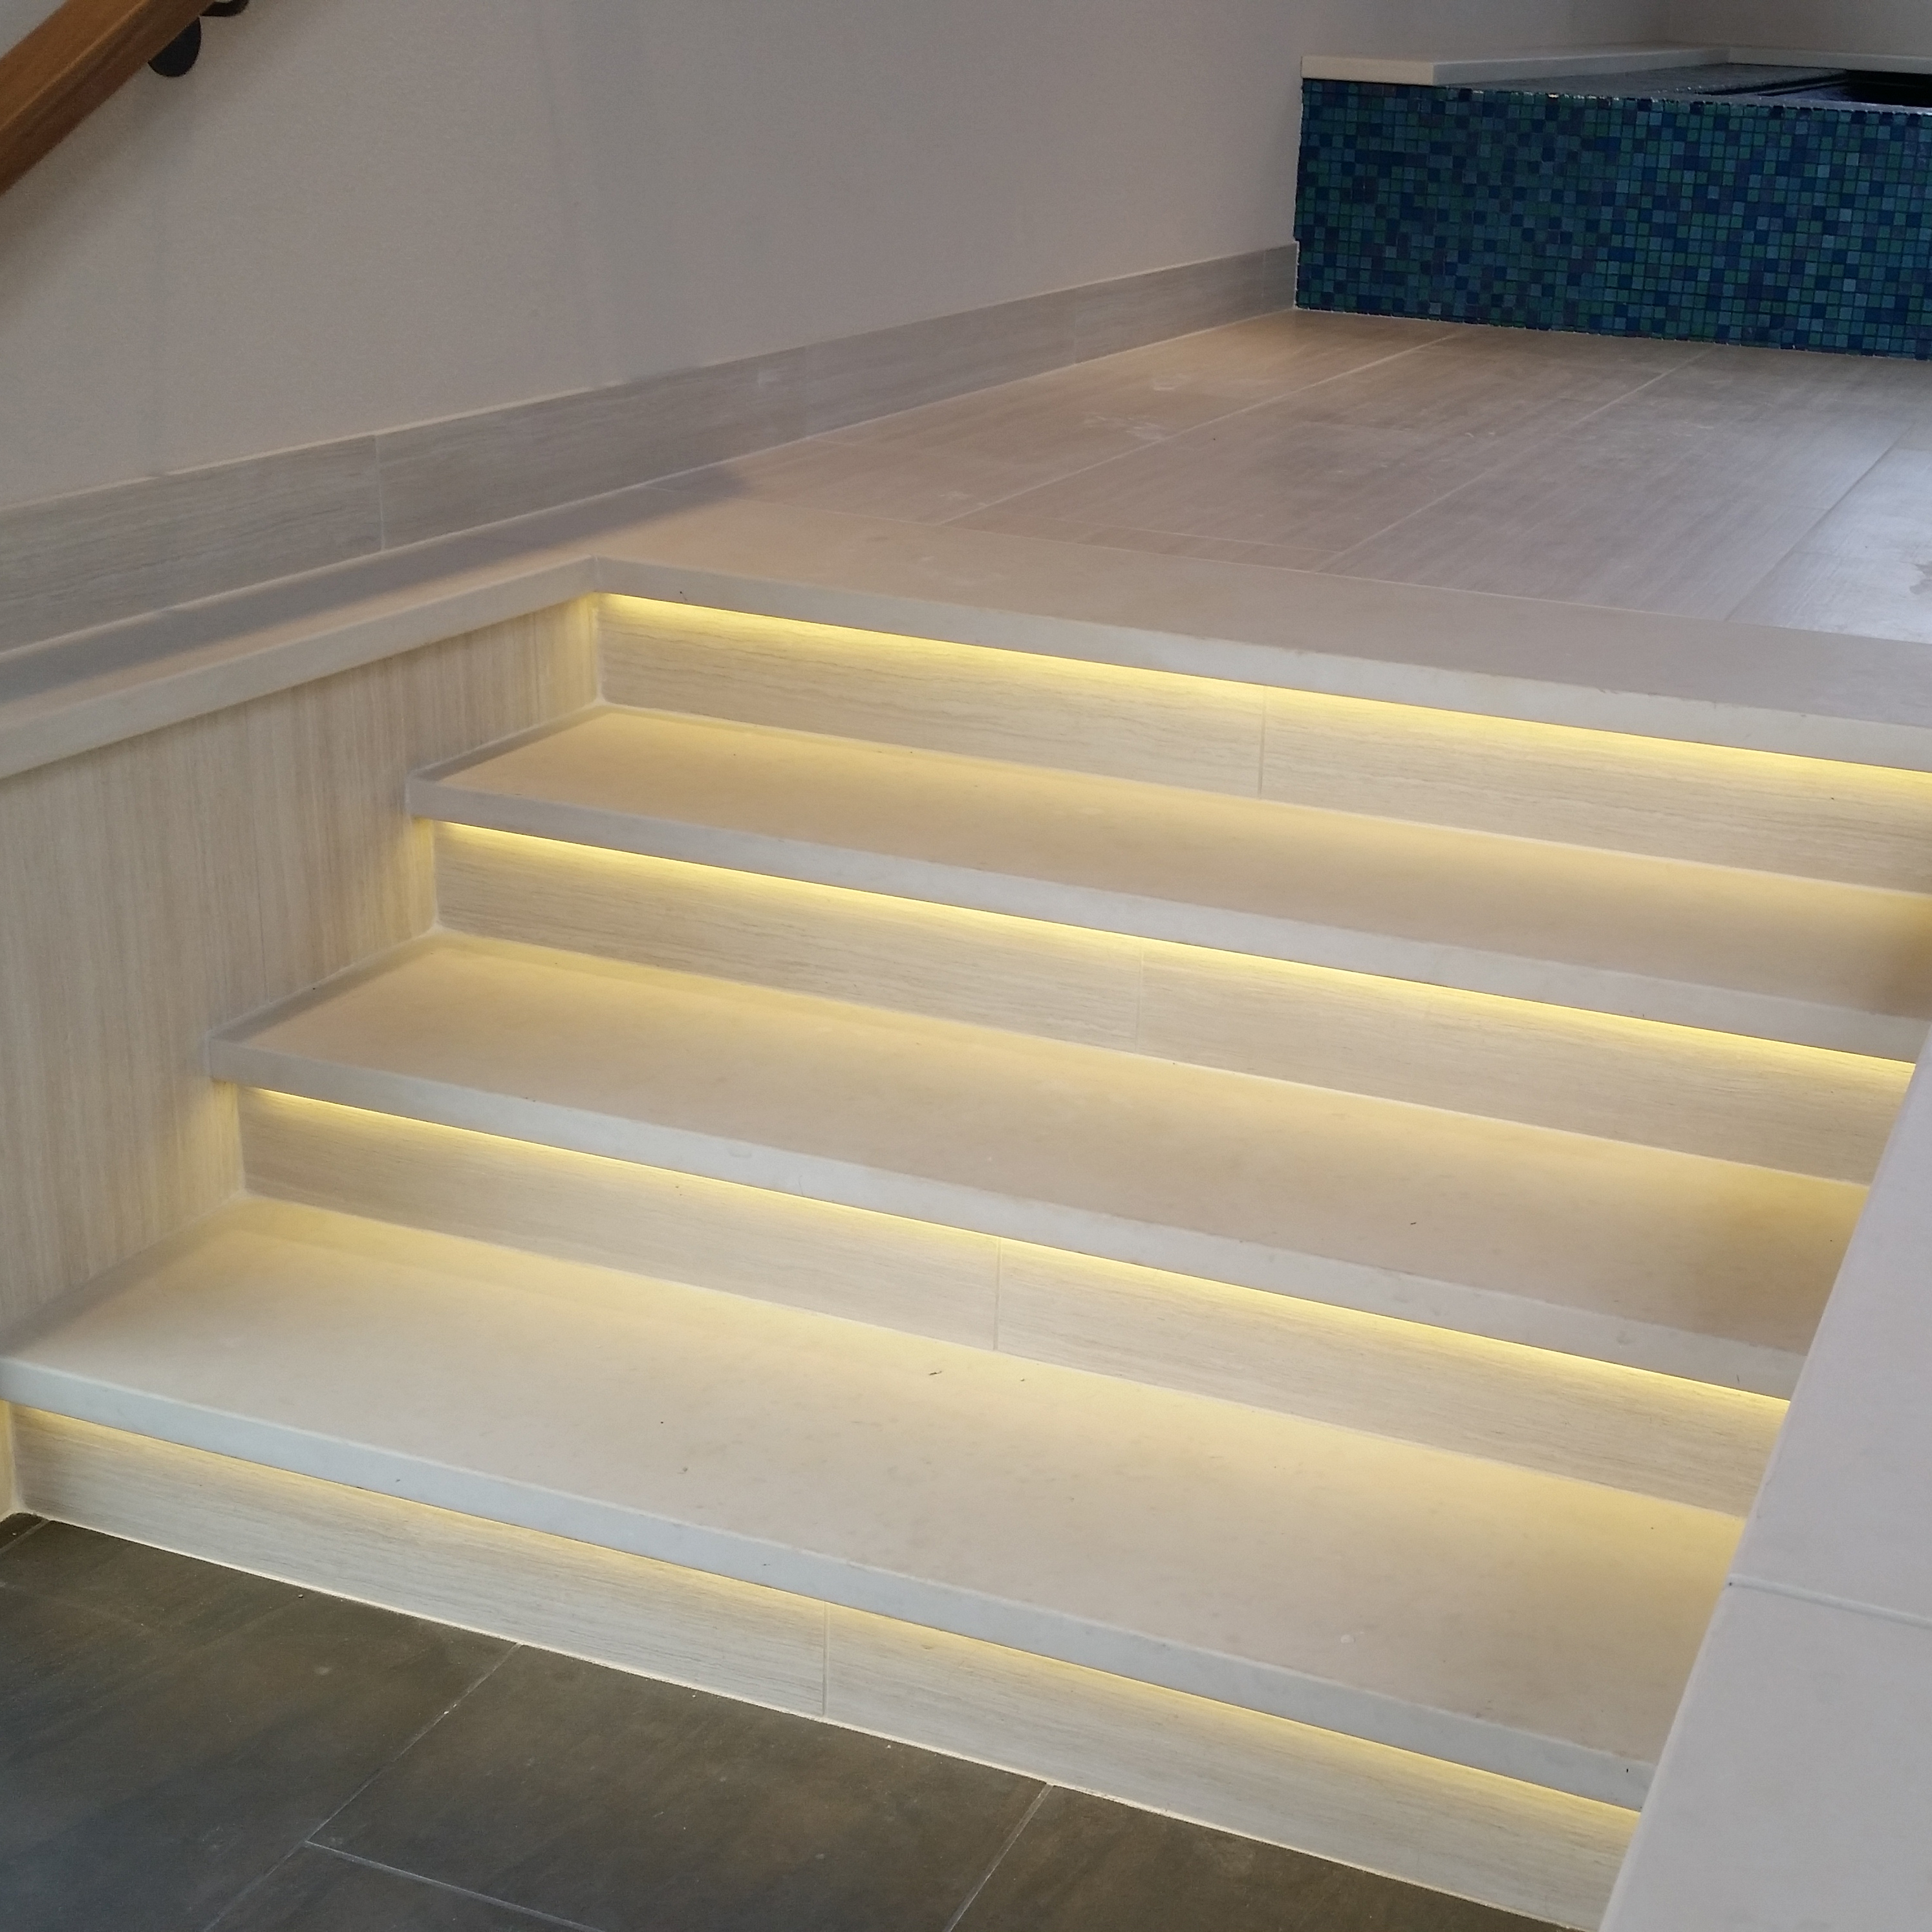 Stone Properties The Use Of Treads And Risers Create A Beautiful Staircase Have Smooth Horizontal Surface For Walking On Typically With